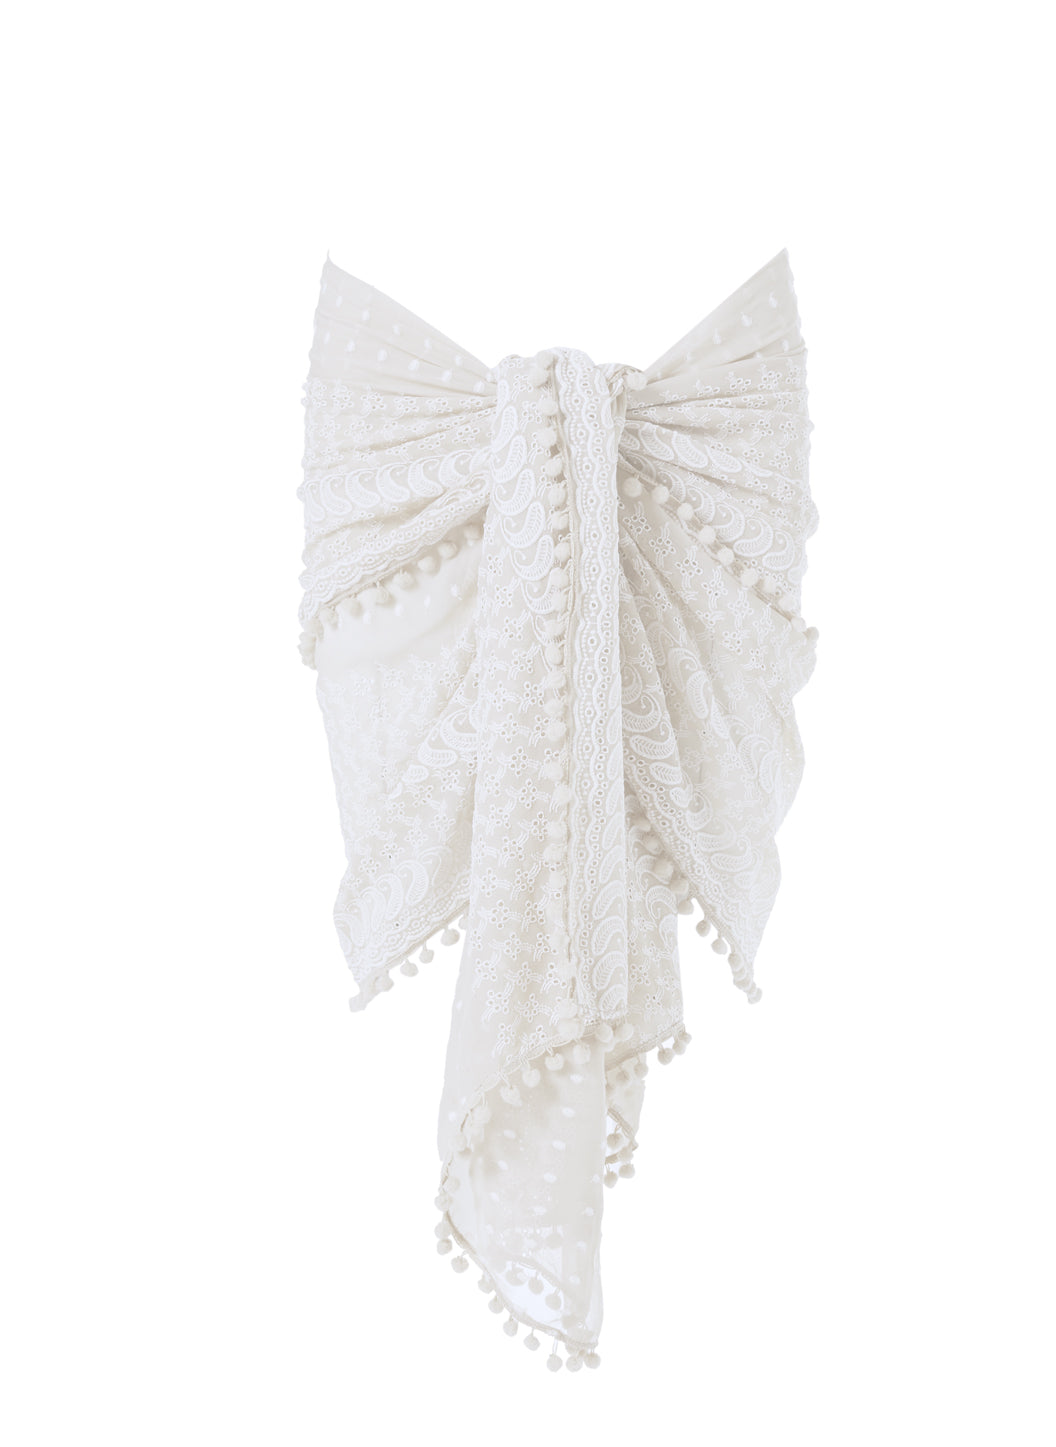 Pareo Cream Embroidered Multi-Way Cover Up